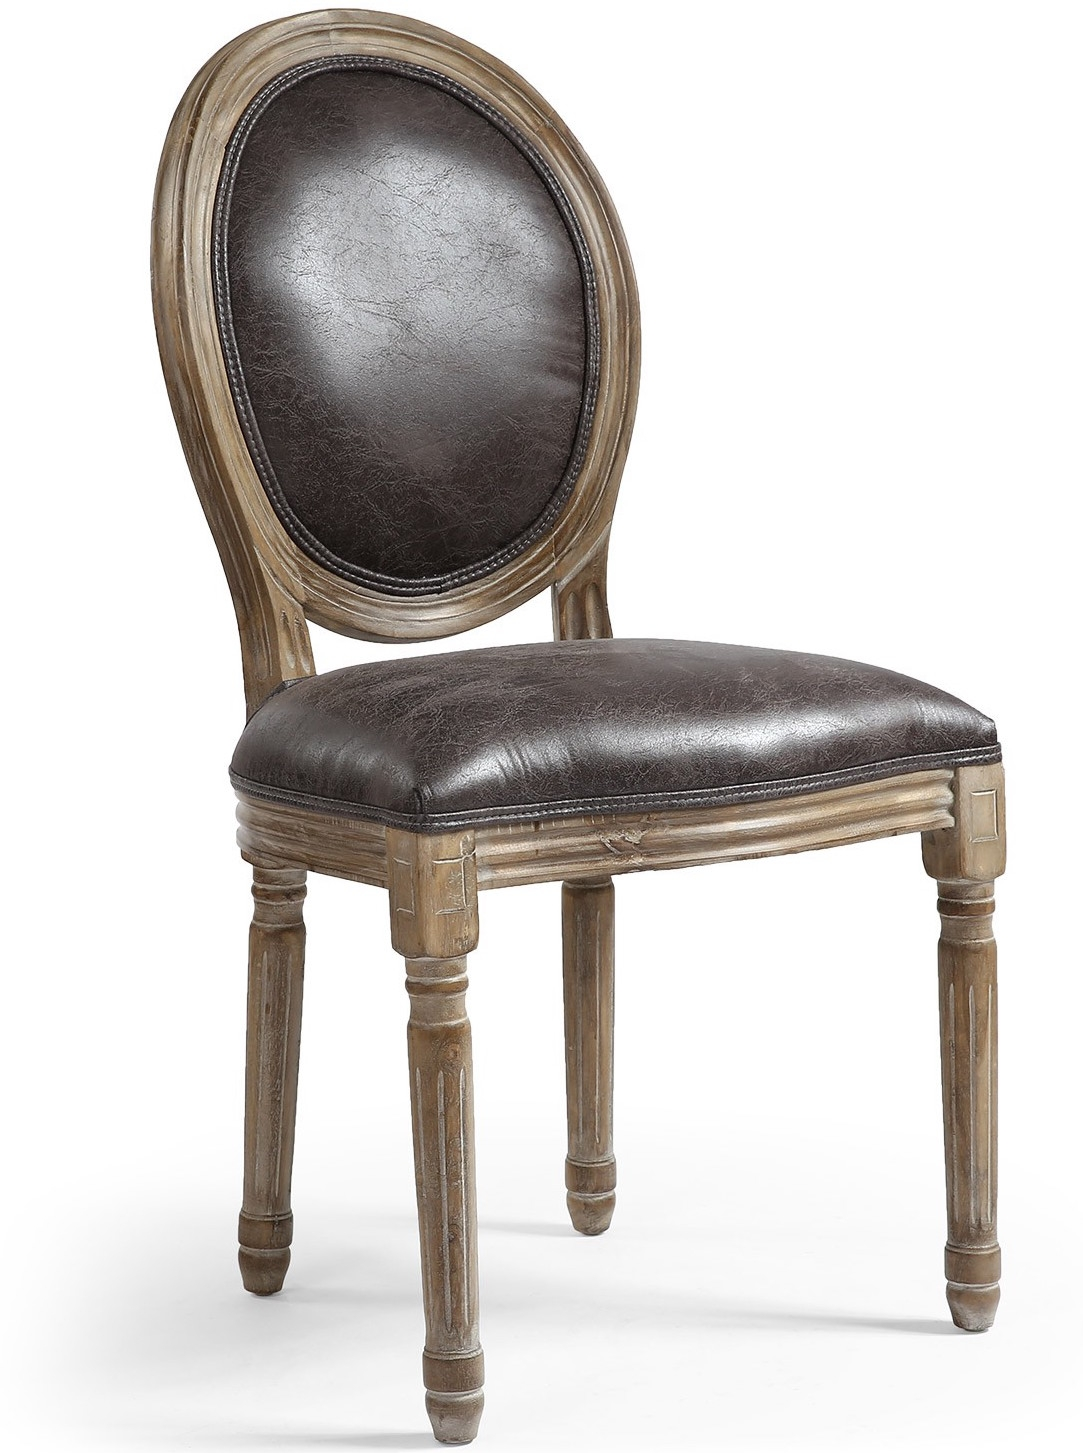 chaise m daillon bois et simili effet vieilli louis xvi lot de 2. Black Bedroom Furniture Sets. Home Design Ideas